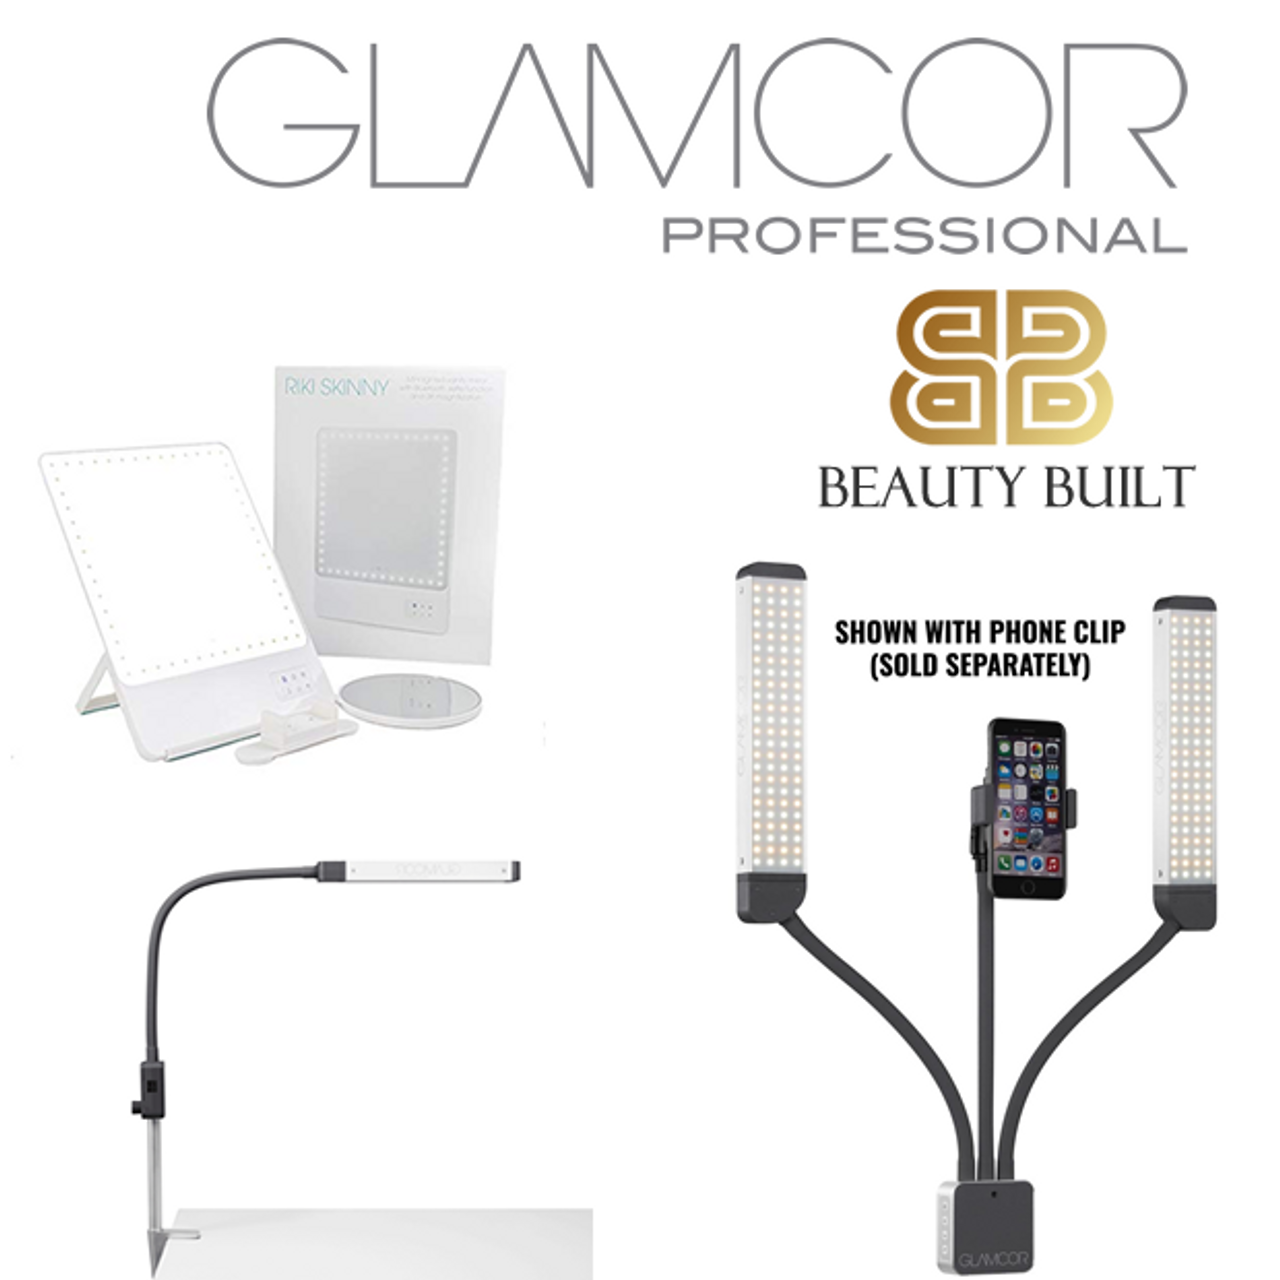 Glamcor Multimedia Extreme with Selfie Function - Pro Lighting for Permanent Makeup (PMU)